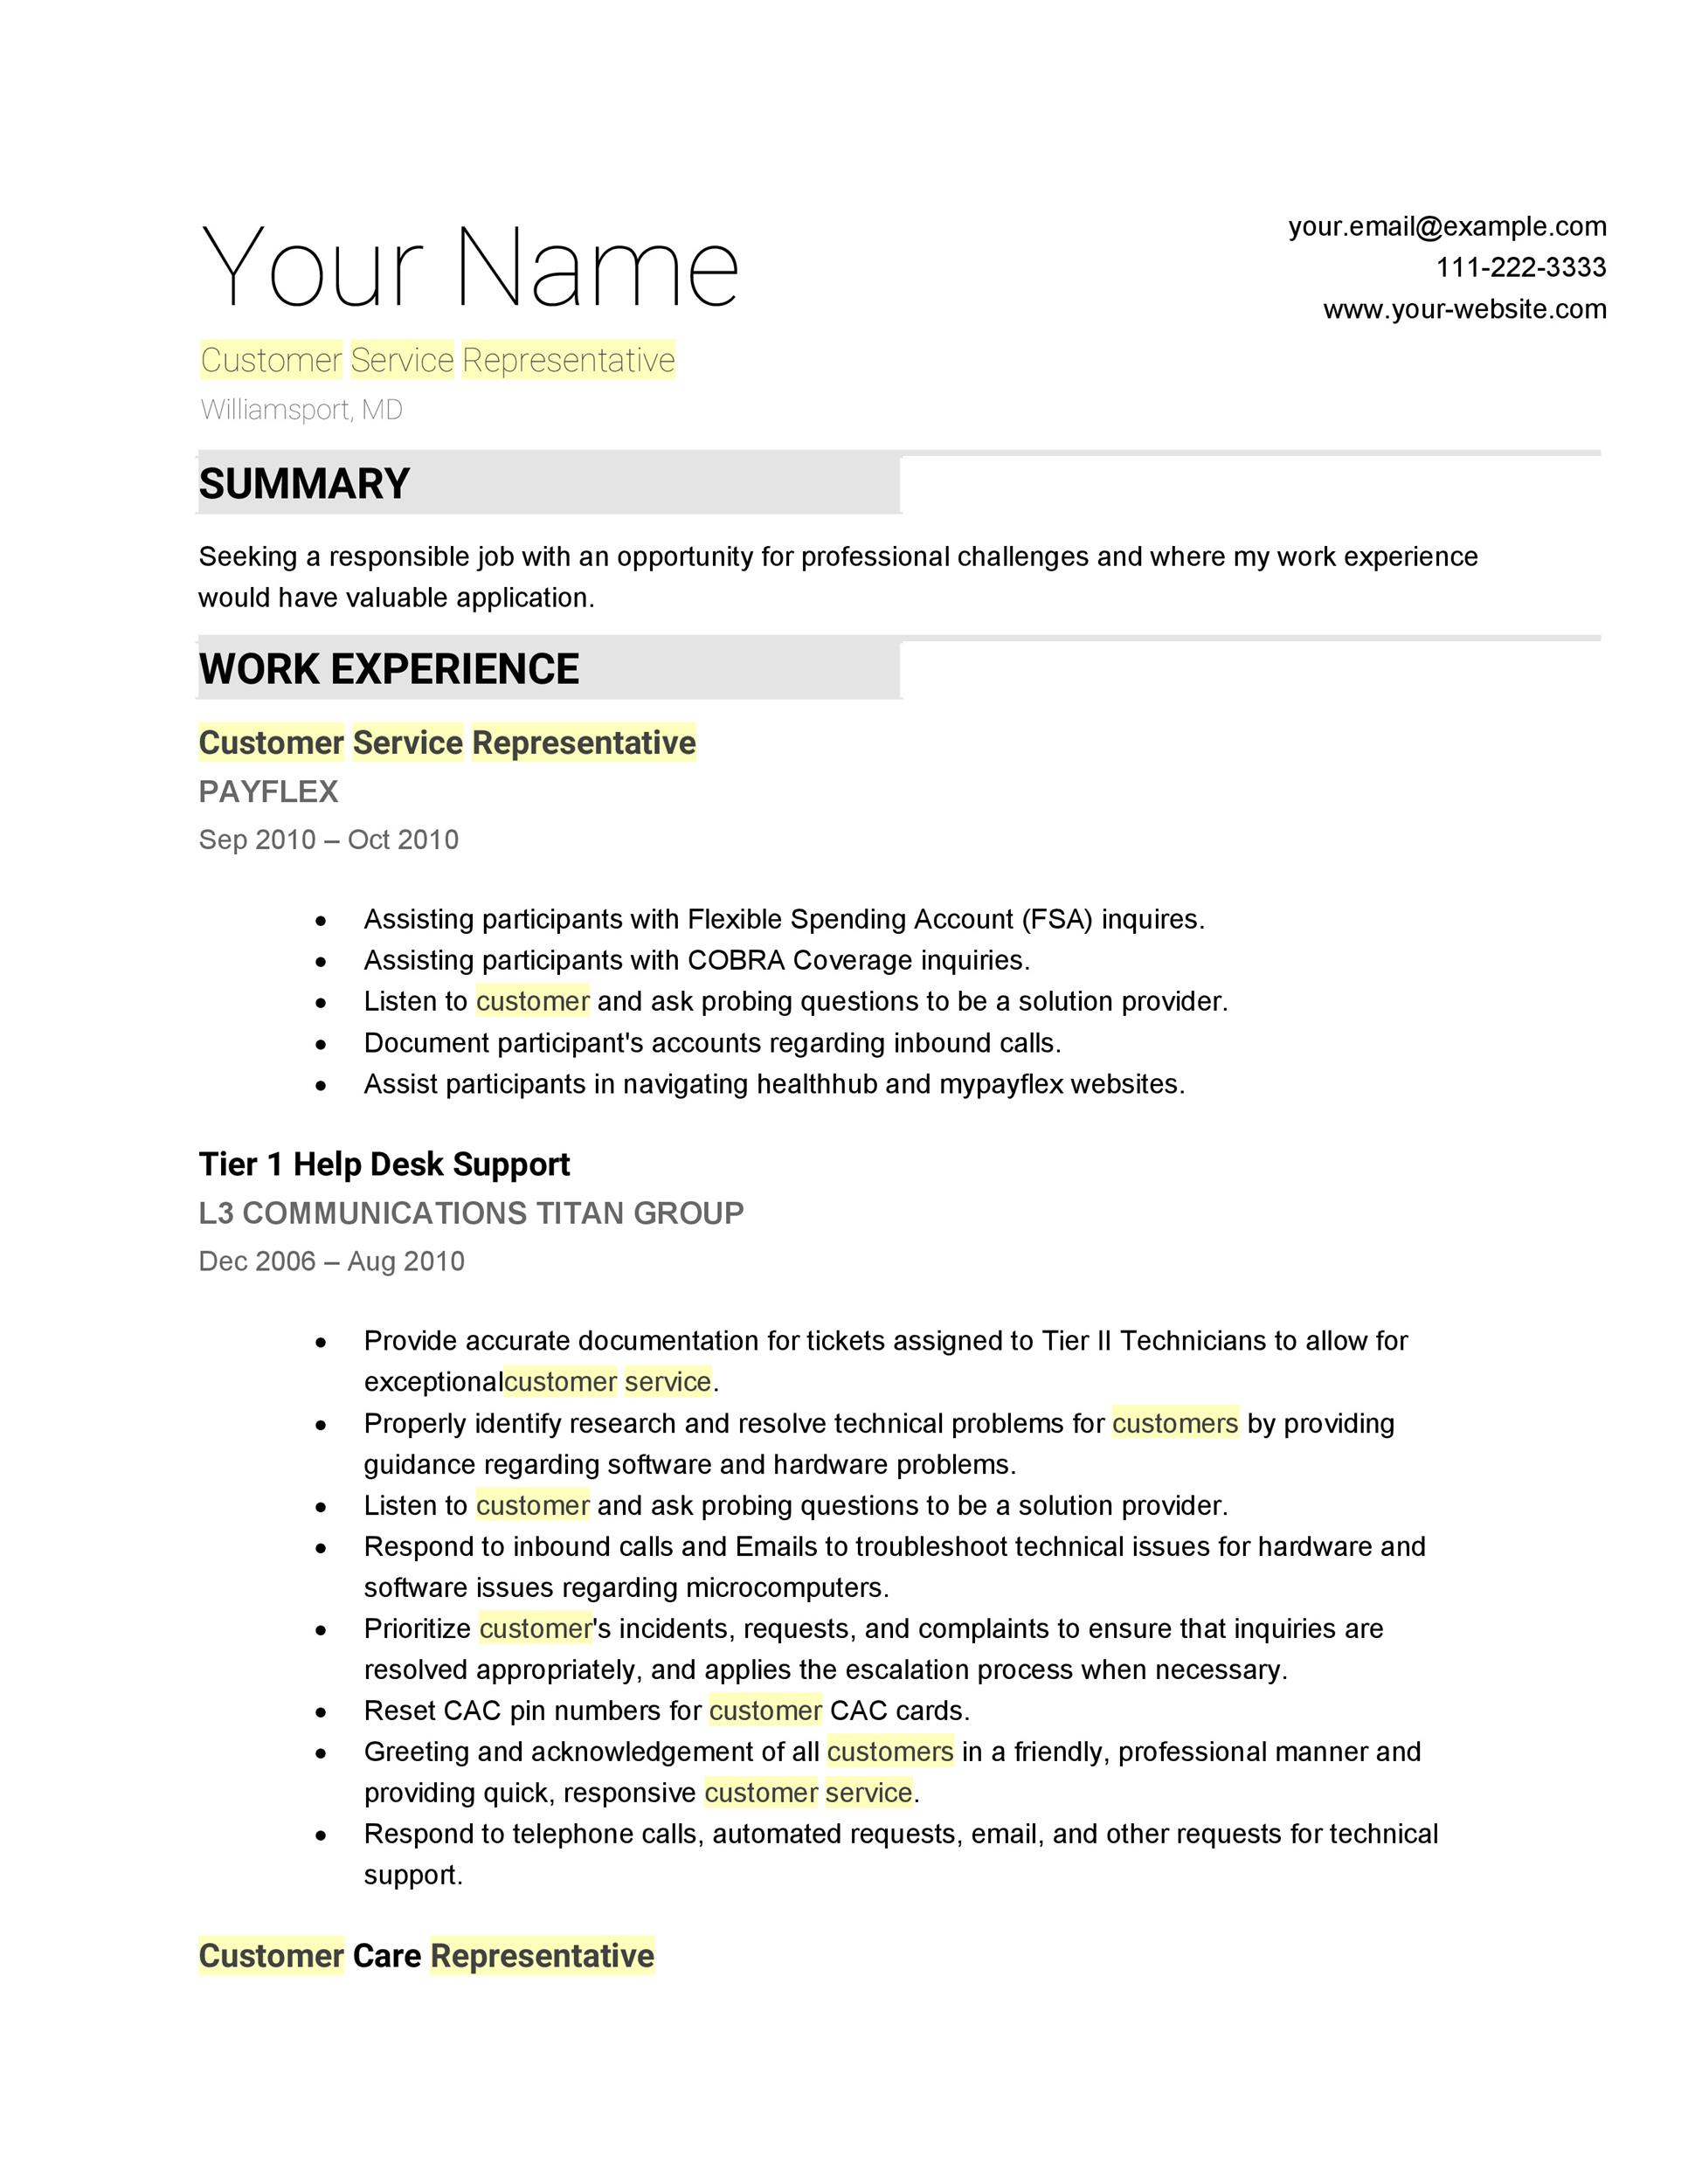 30 customer service resume examples template lab customer service resume templates altavistaventures